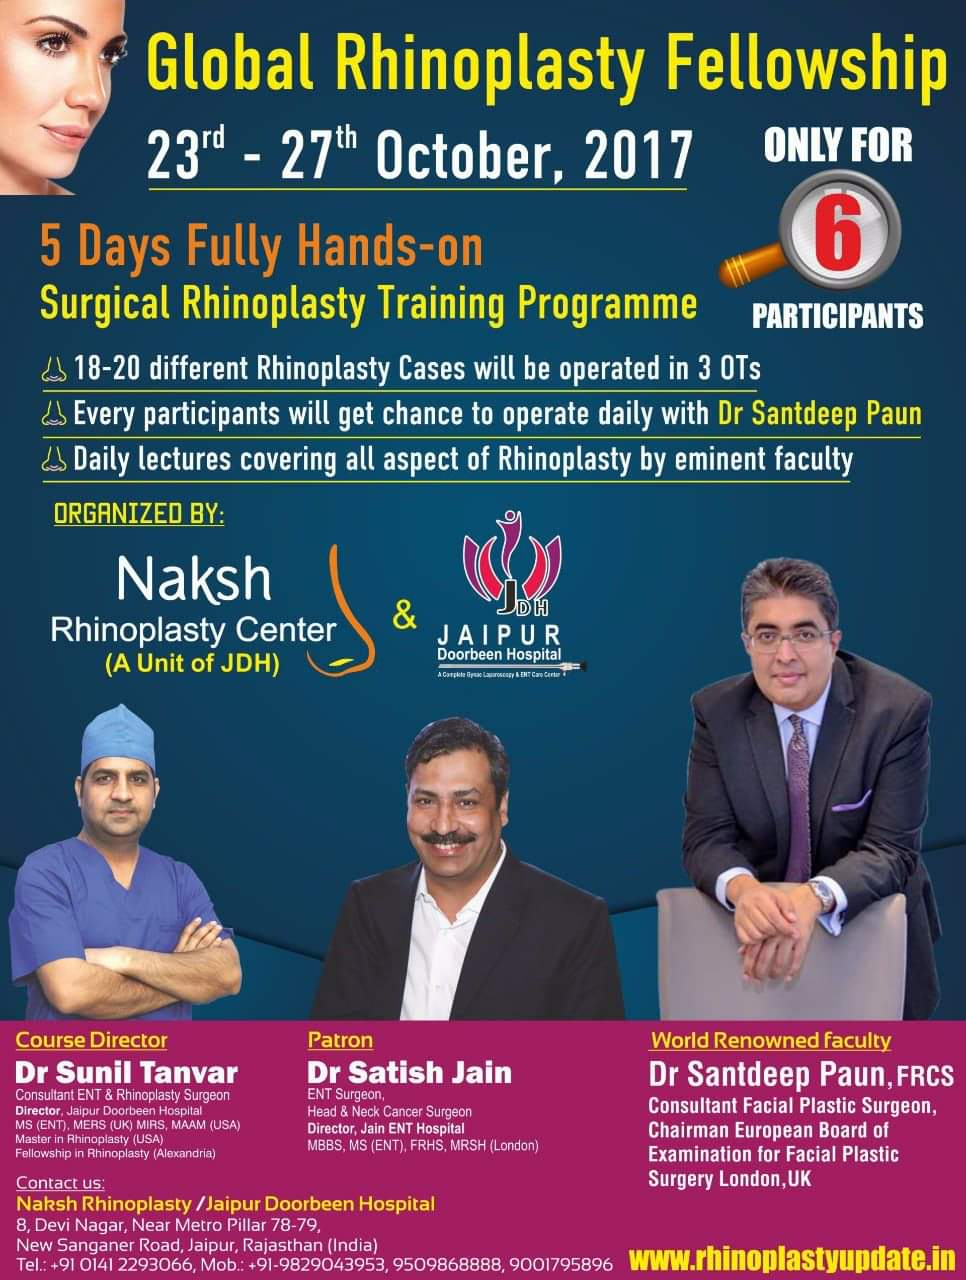 Fully Hands-on Surgical Rhinoplasty Training Programme